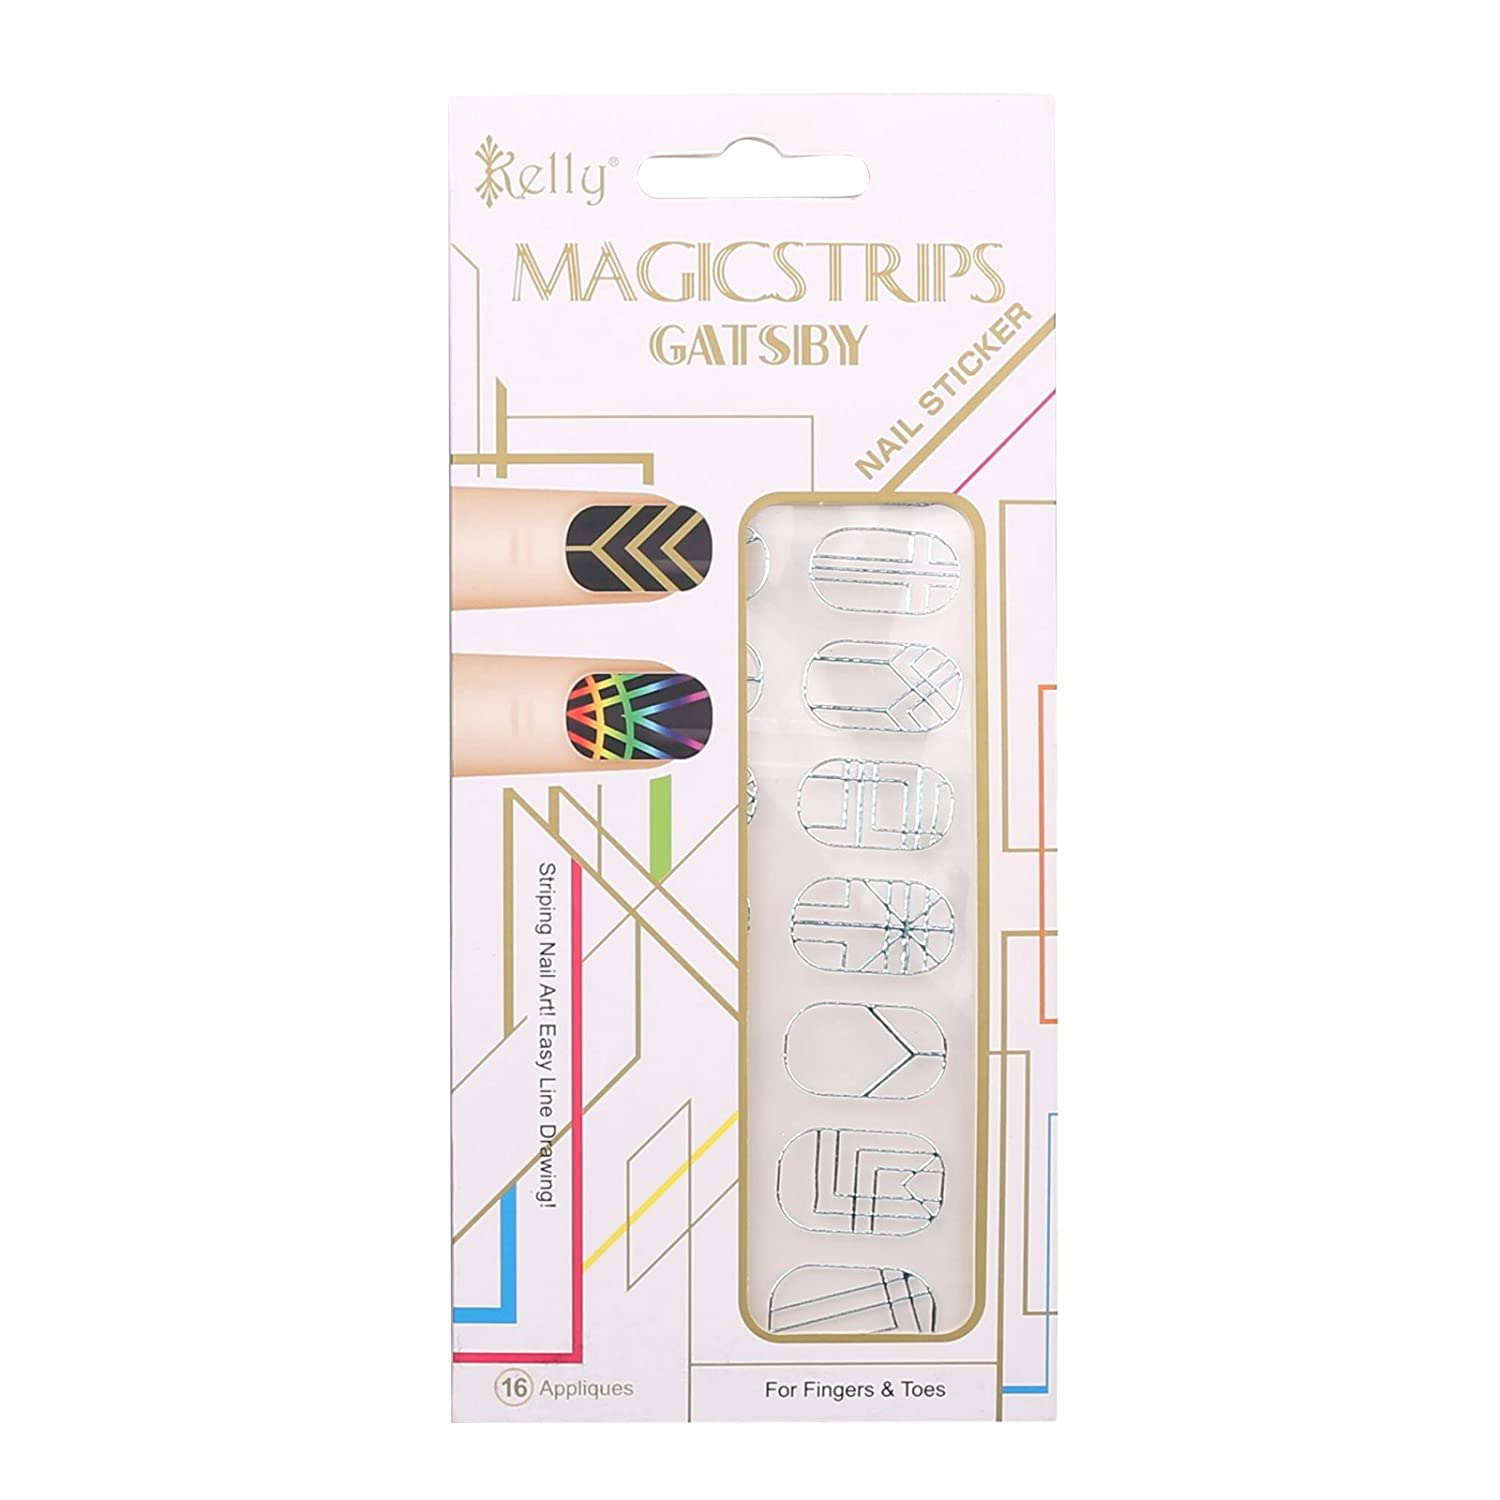 Kelly Gatsby Series Manicure DIY Magic Strips Nail Stickers Nail Wraps, 3pcs with Random Patterns, Gold HIGH' S